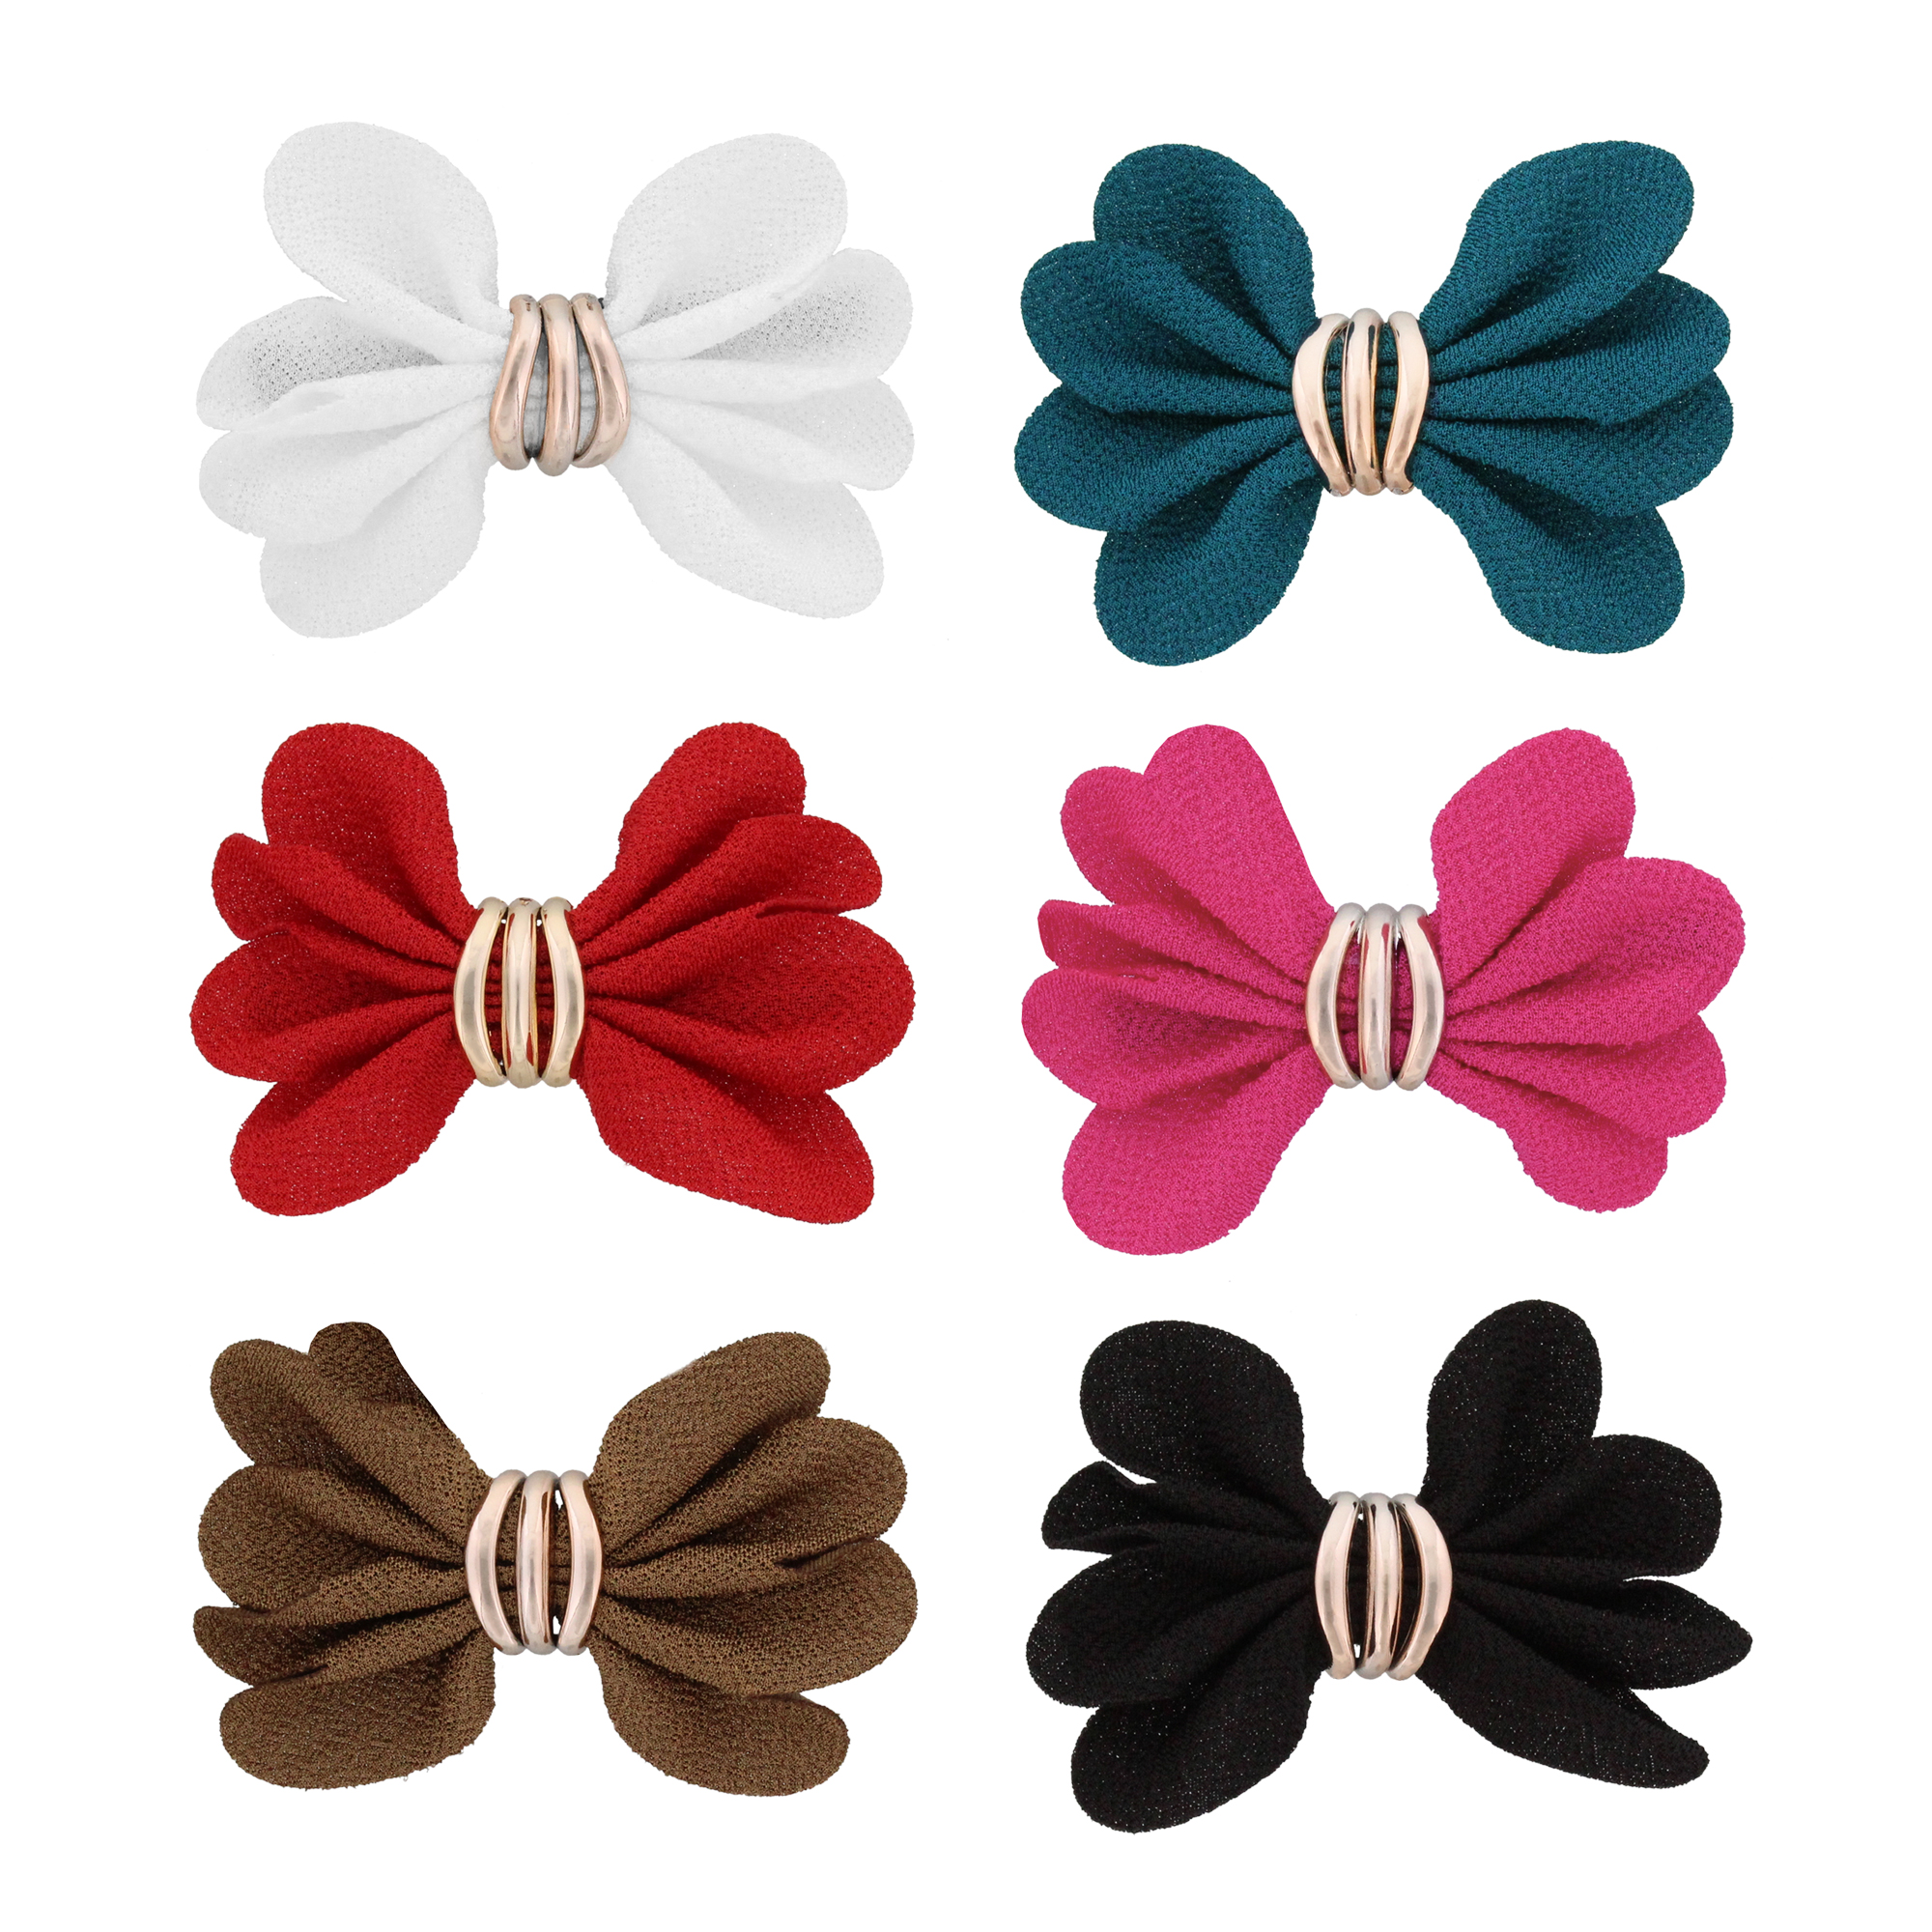 MoDA Large Hair Clips with a Set of 6 Assorted Colors H0150